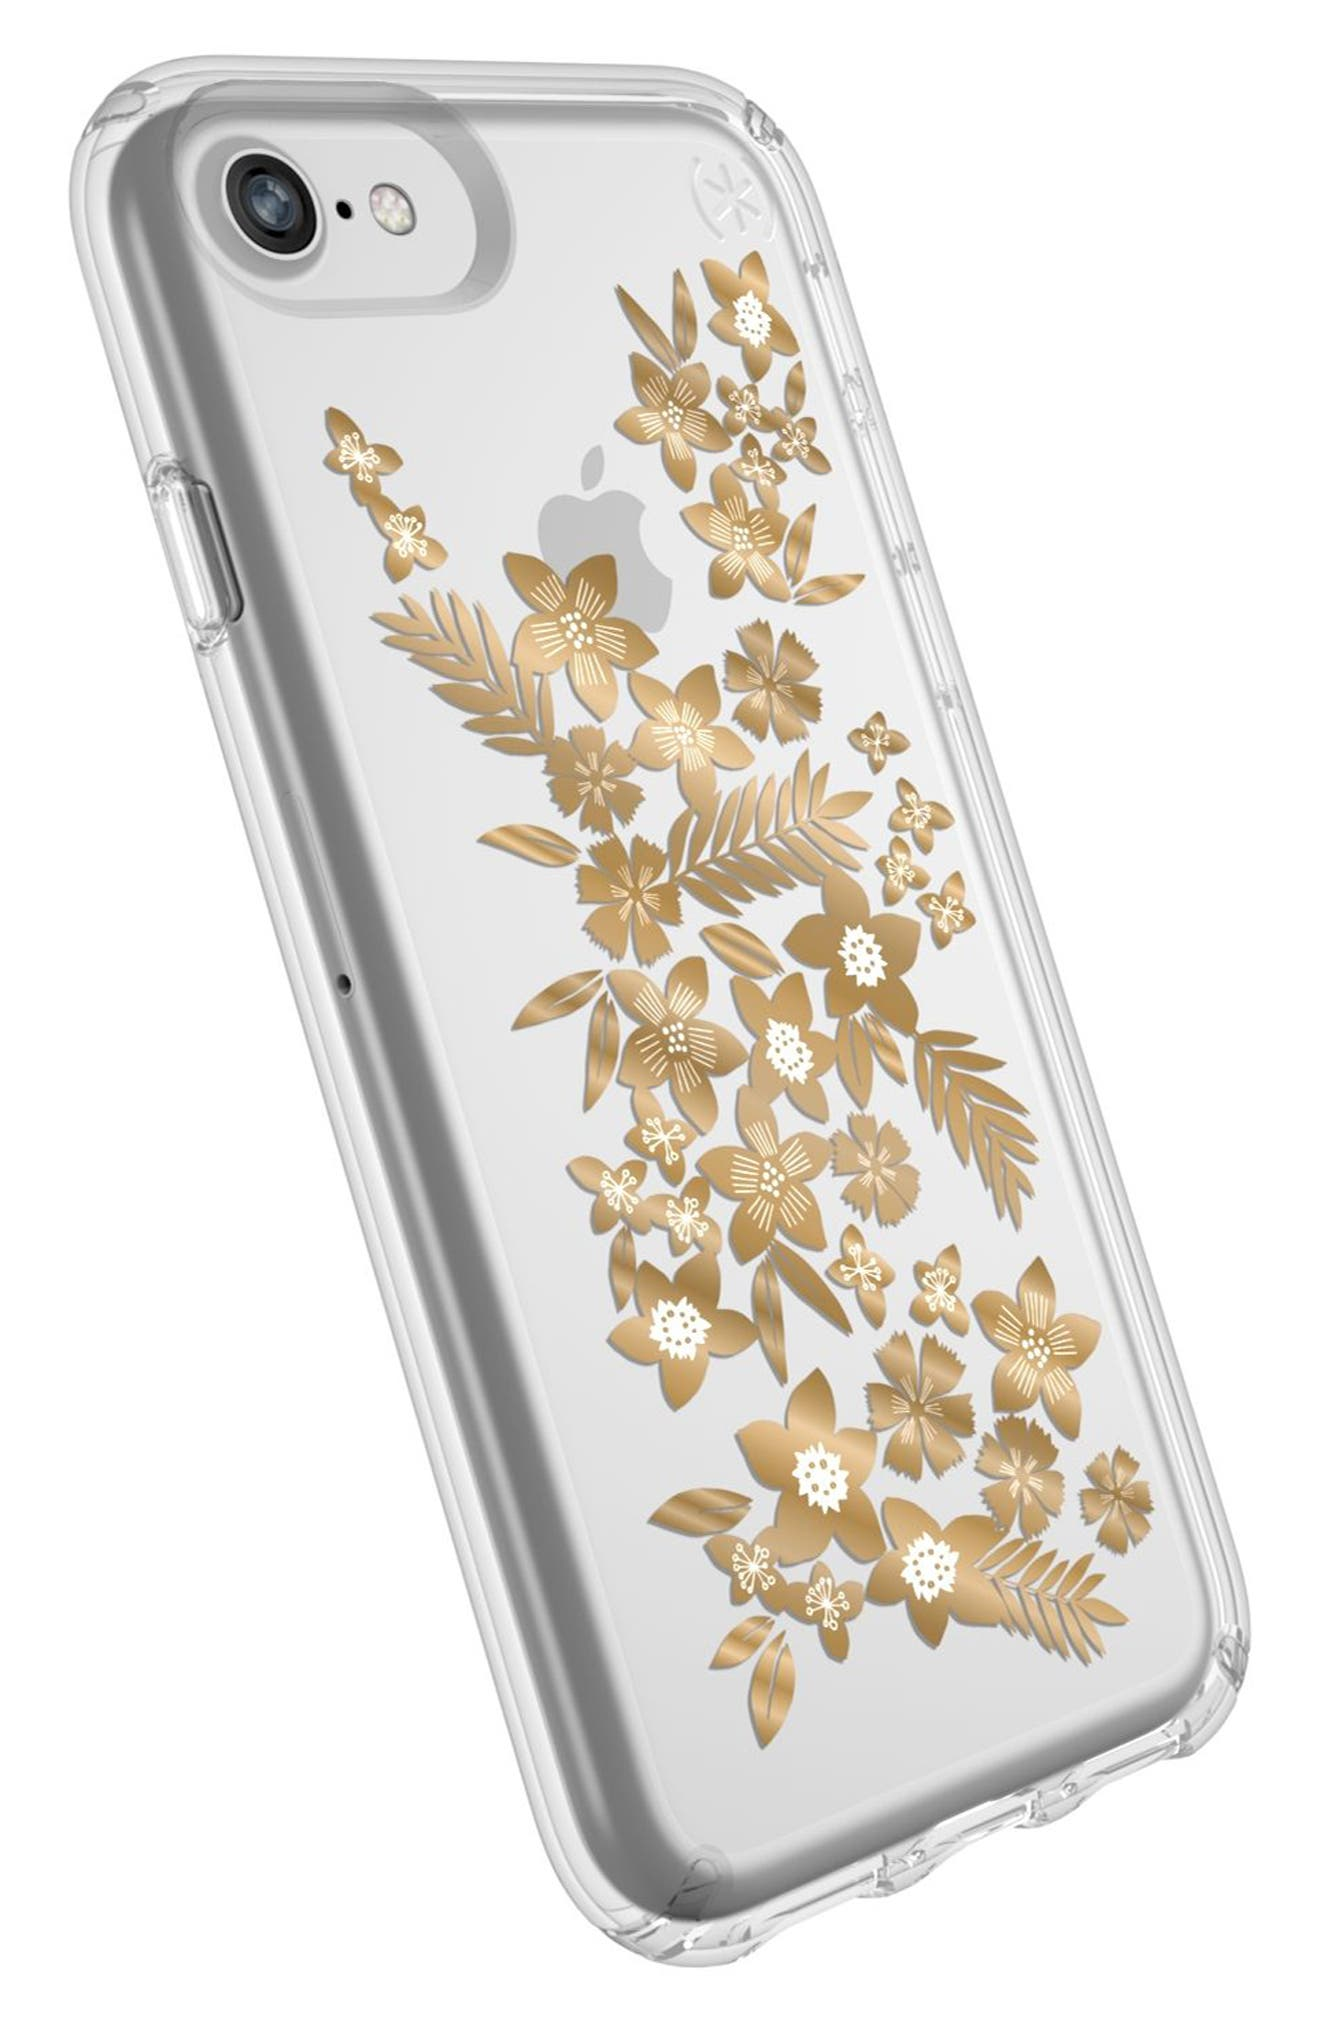 Transparent Shimmer Floral Metallic iPhone 6/6s/7/8 Case,                             Alternate thumbnail 4, color,                             040